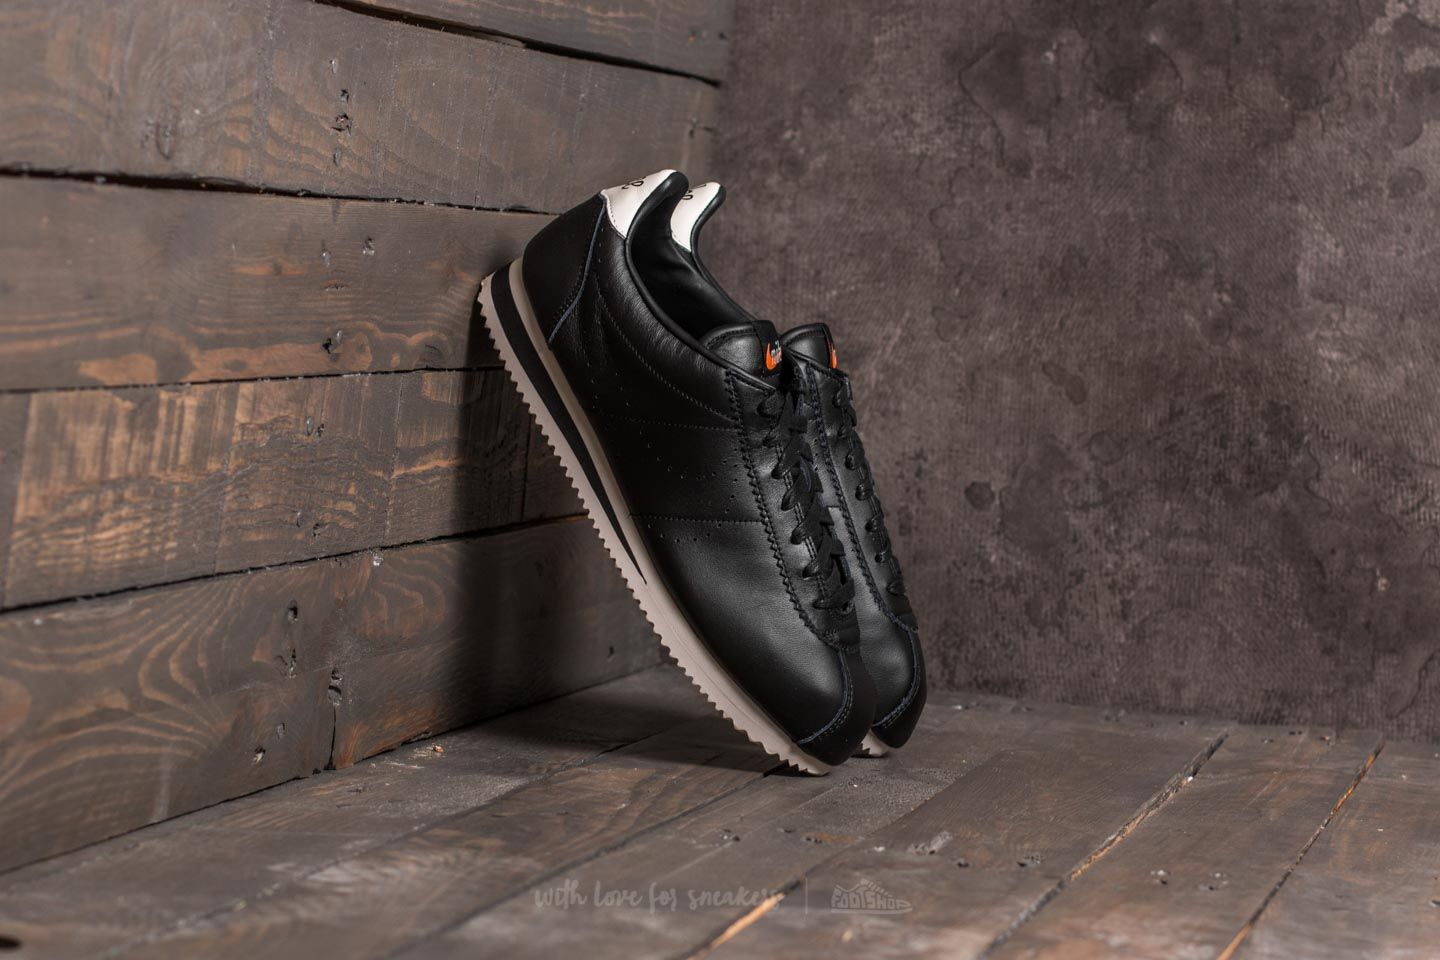 842b25e0ba4 Nike Classic Cortez Leather Premium Black  Black-Light Orewood ...